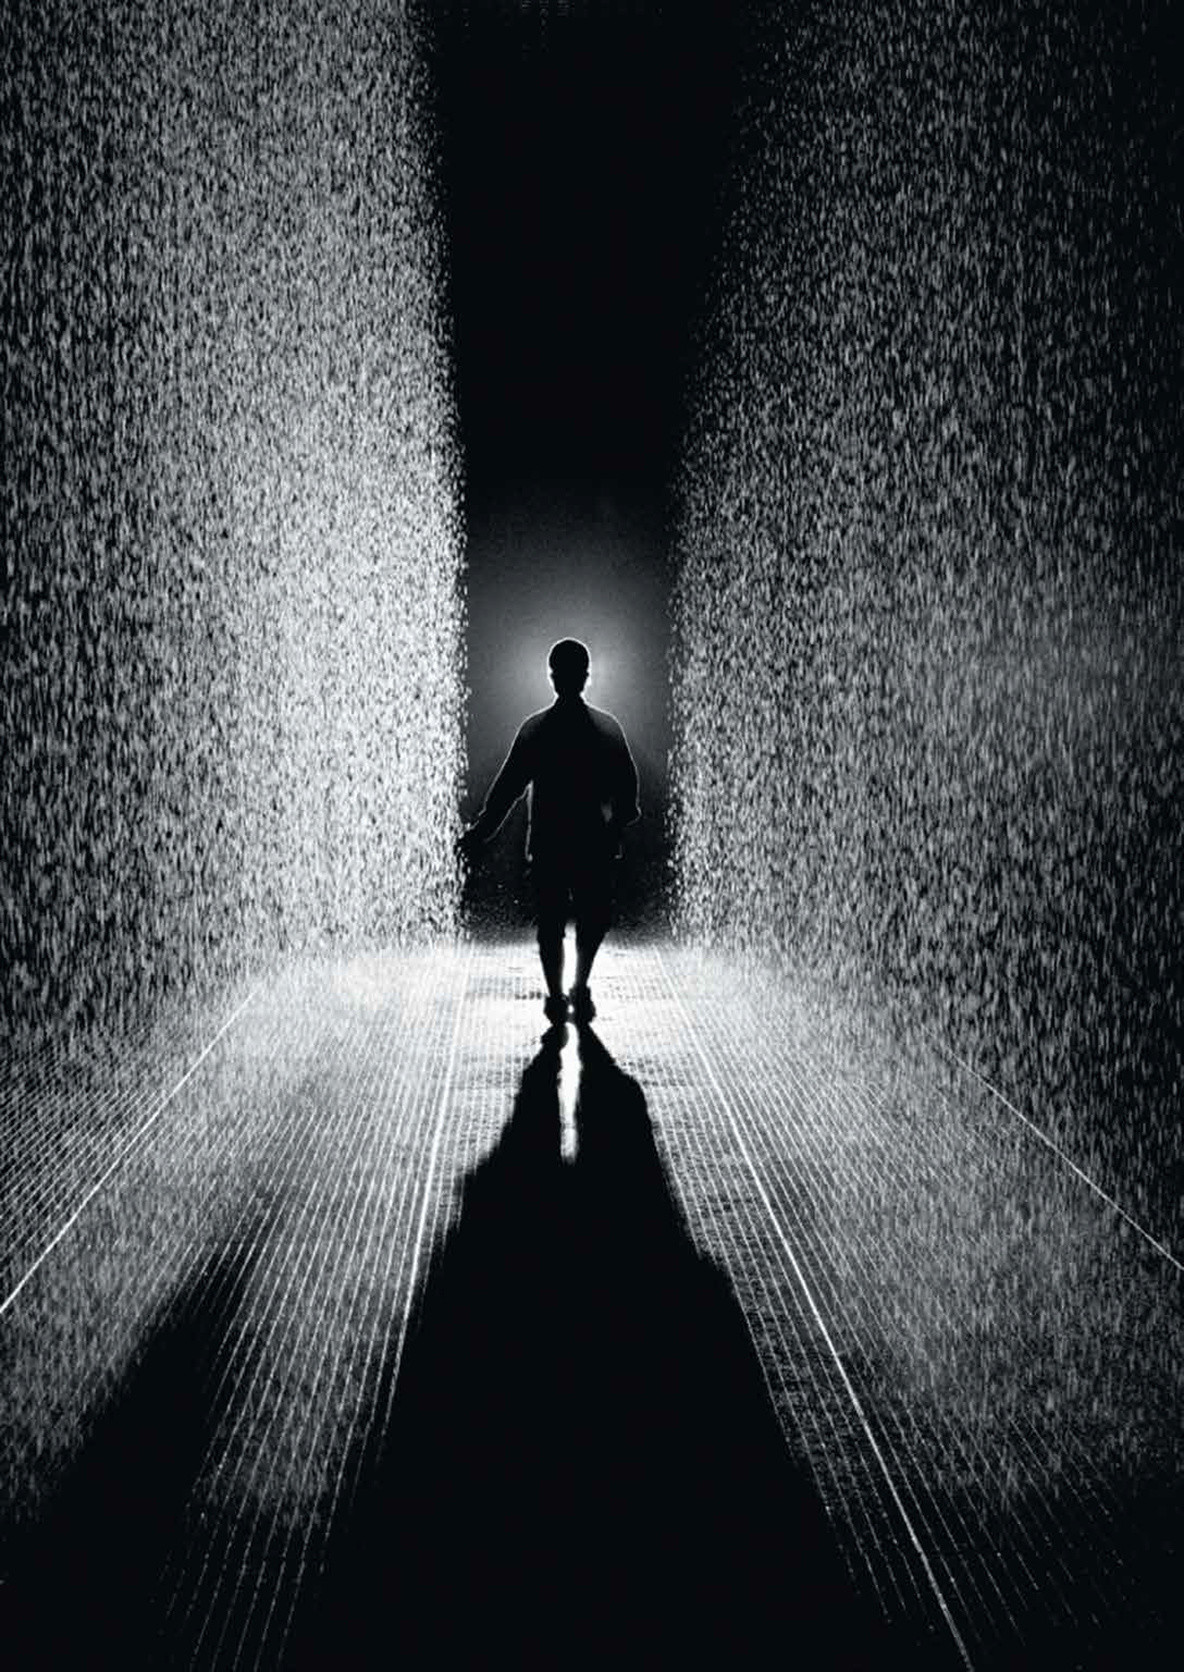 Random International. Rain Room. 2012. Photo courtesy of the artist